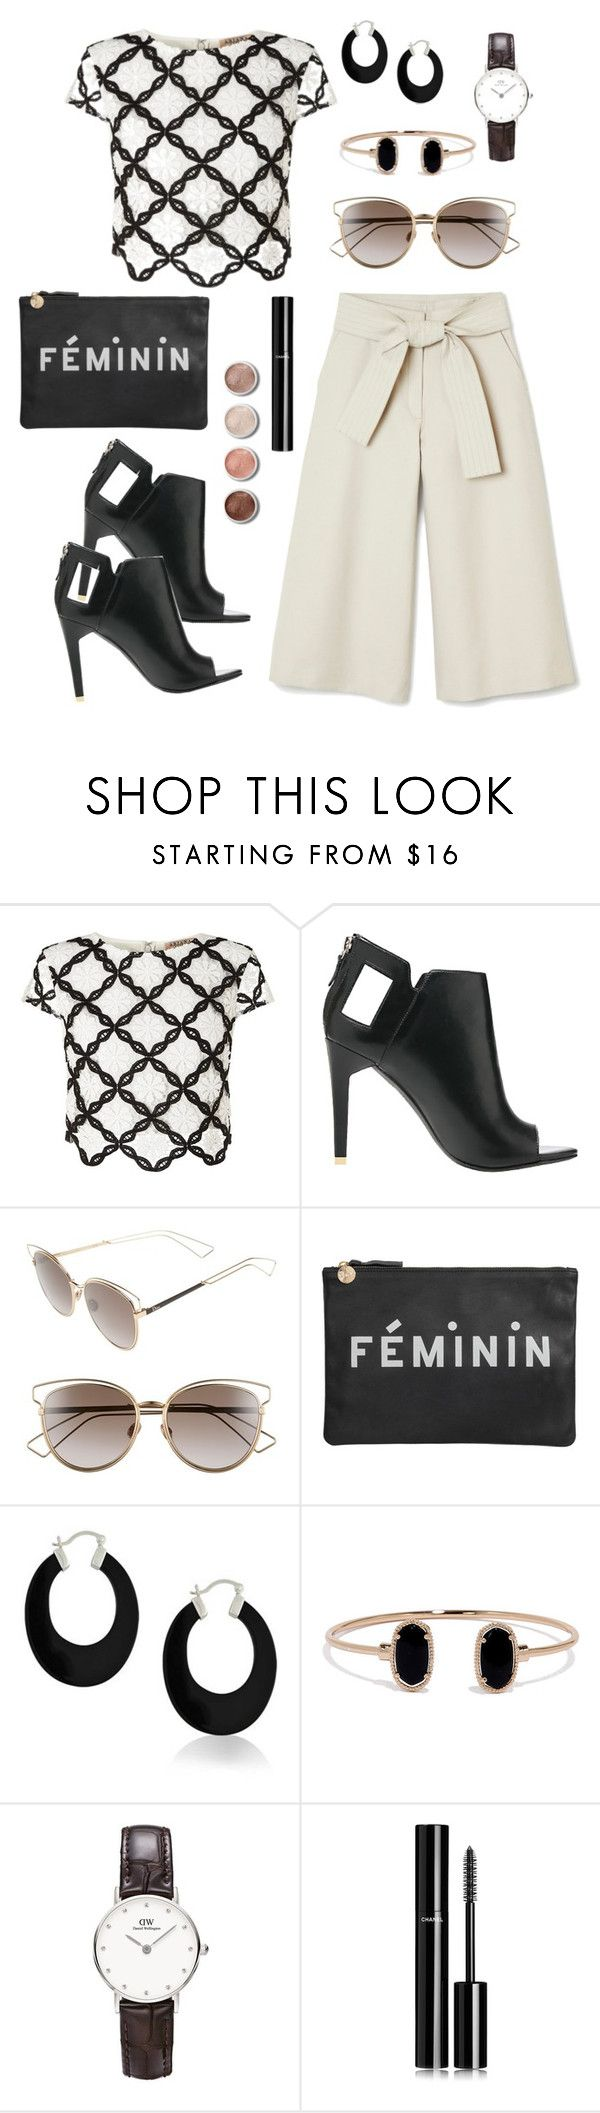 """Féminin"" by athinamargot on Polyvore featuring Lipsy, Alepel, Christian Dior, Clare V., Bling Jewelry, Lulu*s, Terre Mère and Chanel"